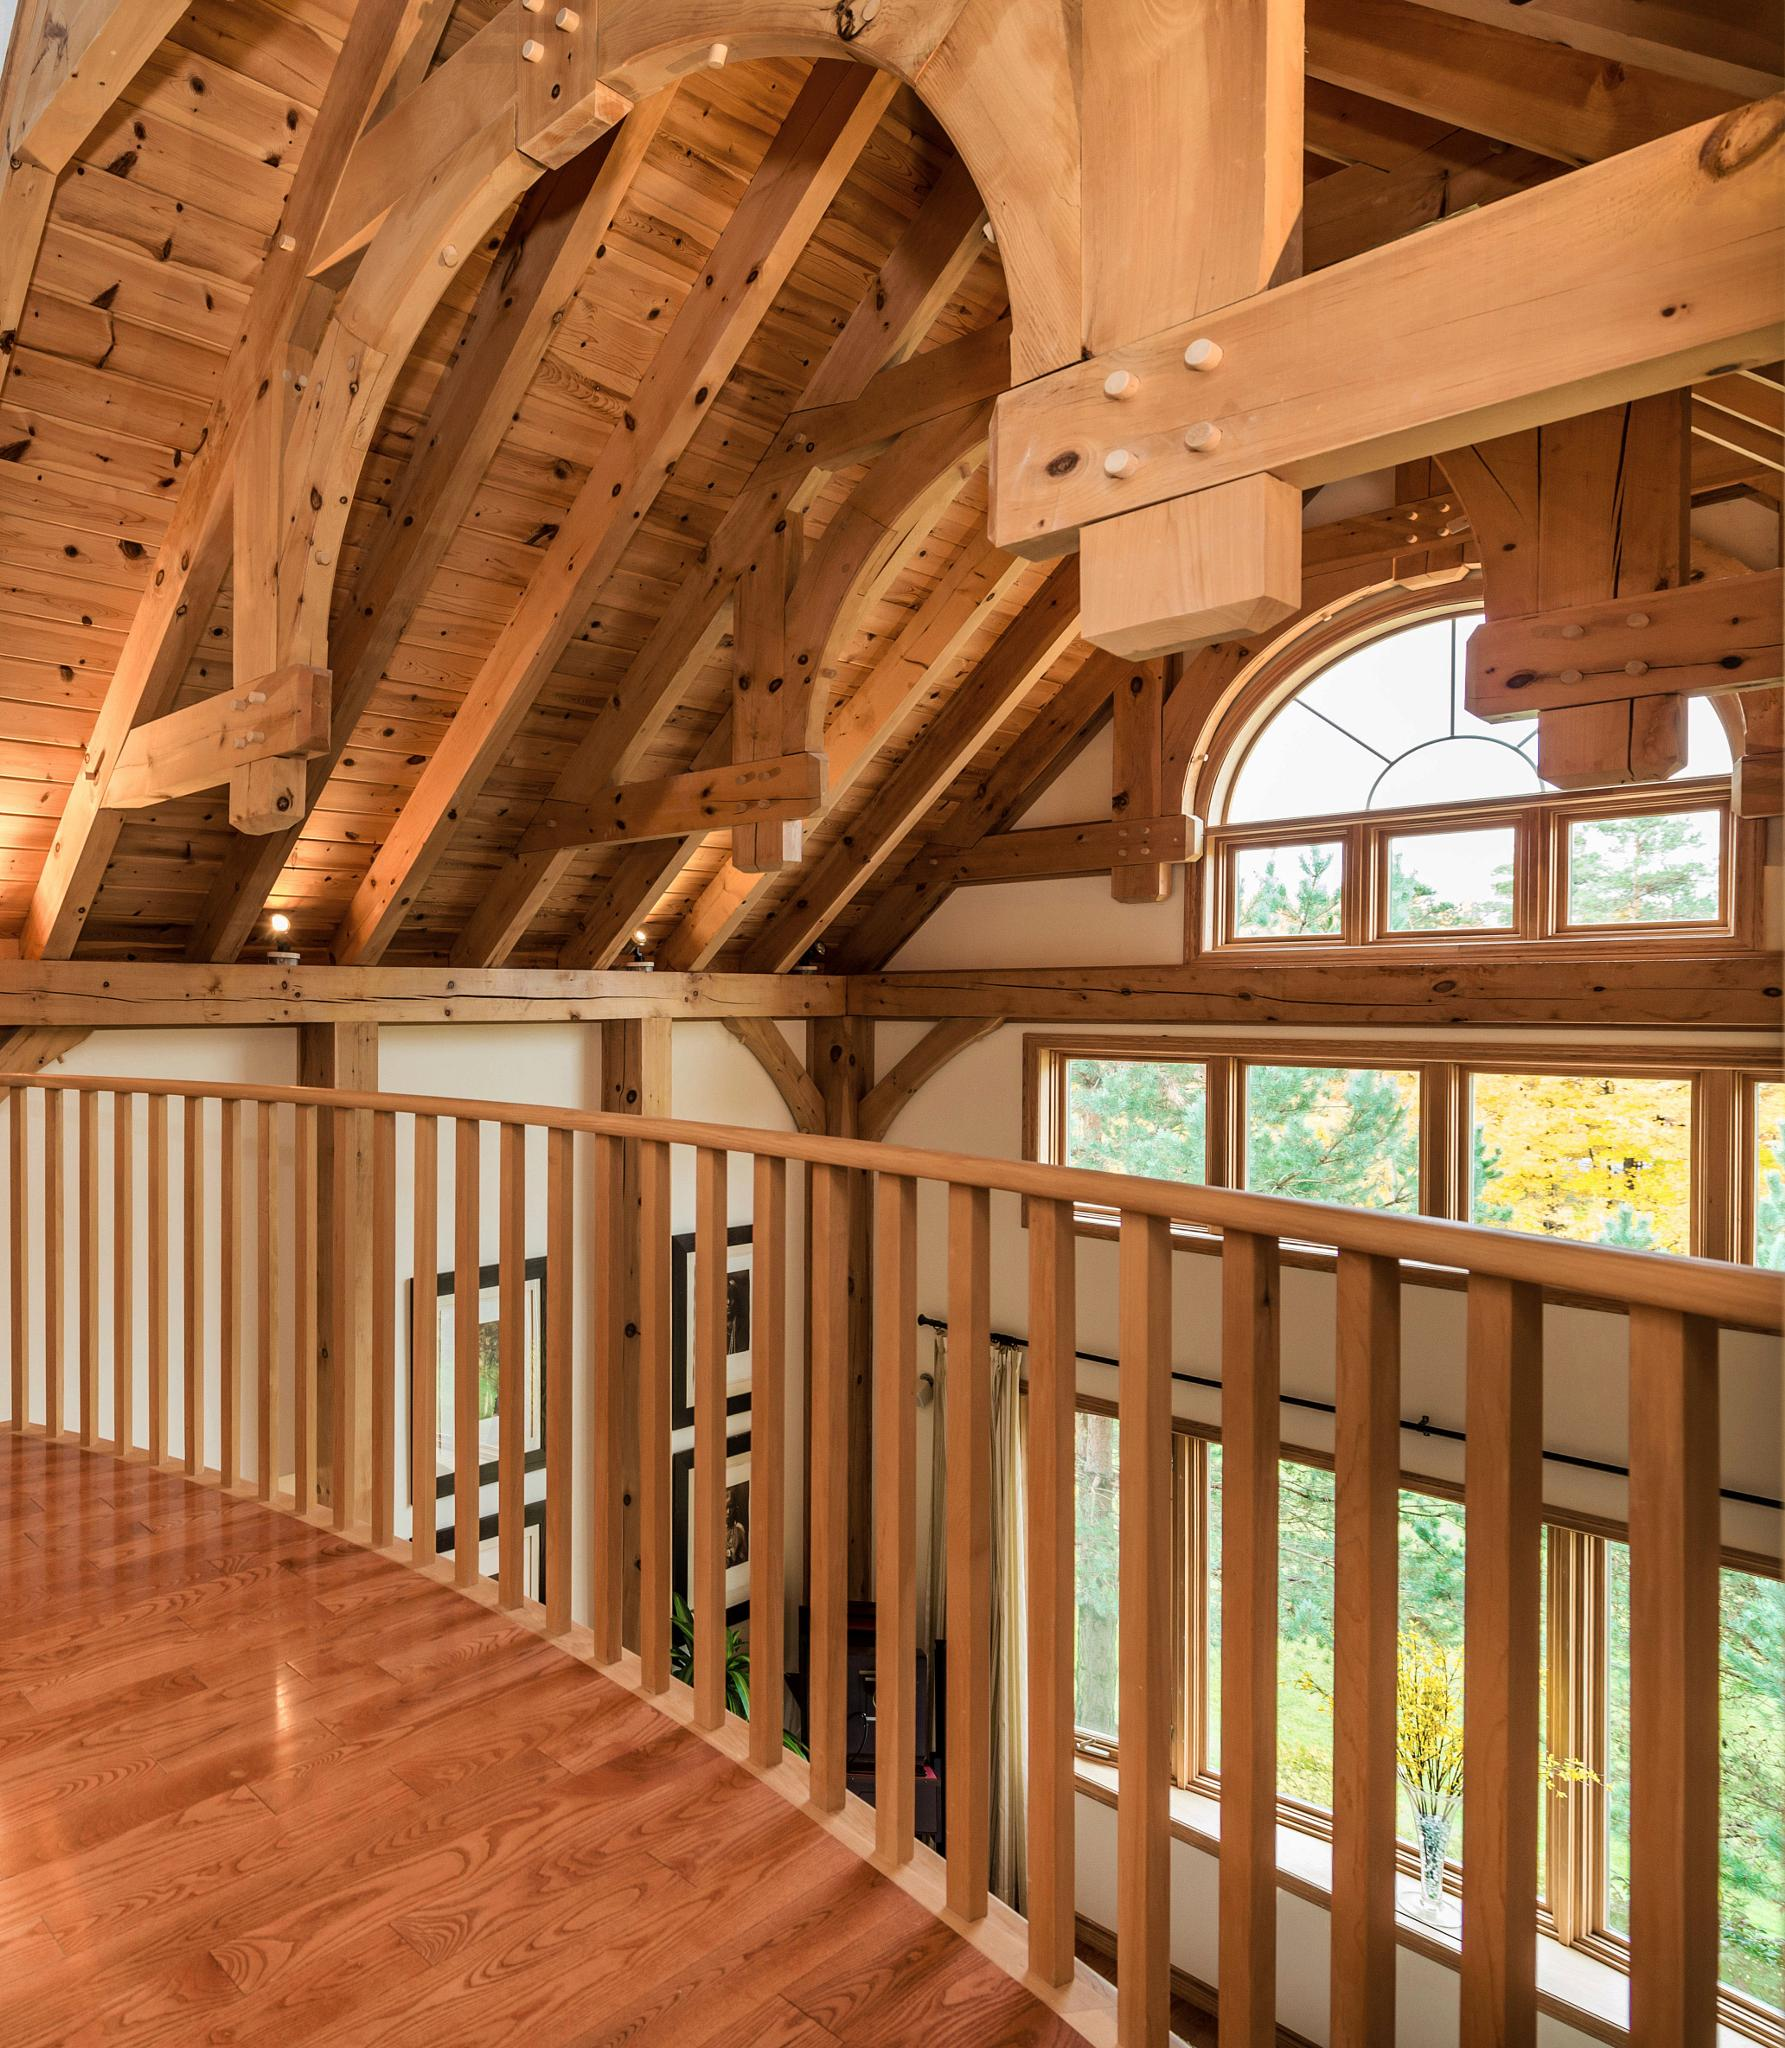 Post & Beam by Home Shots Real Estate Photography